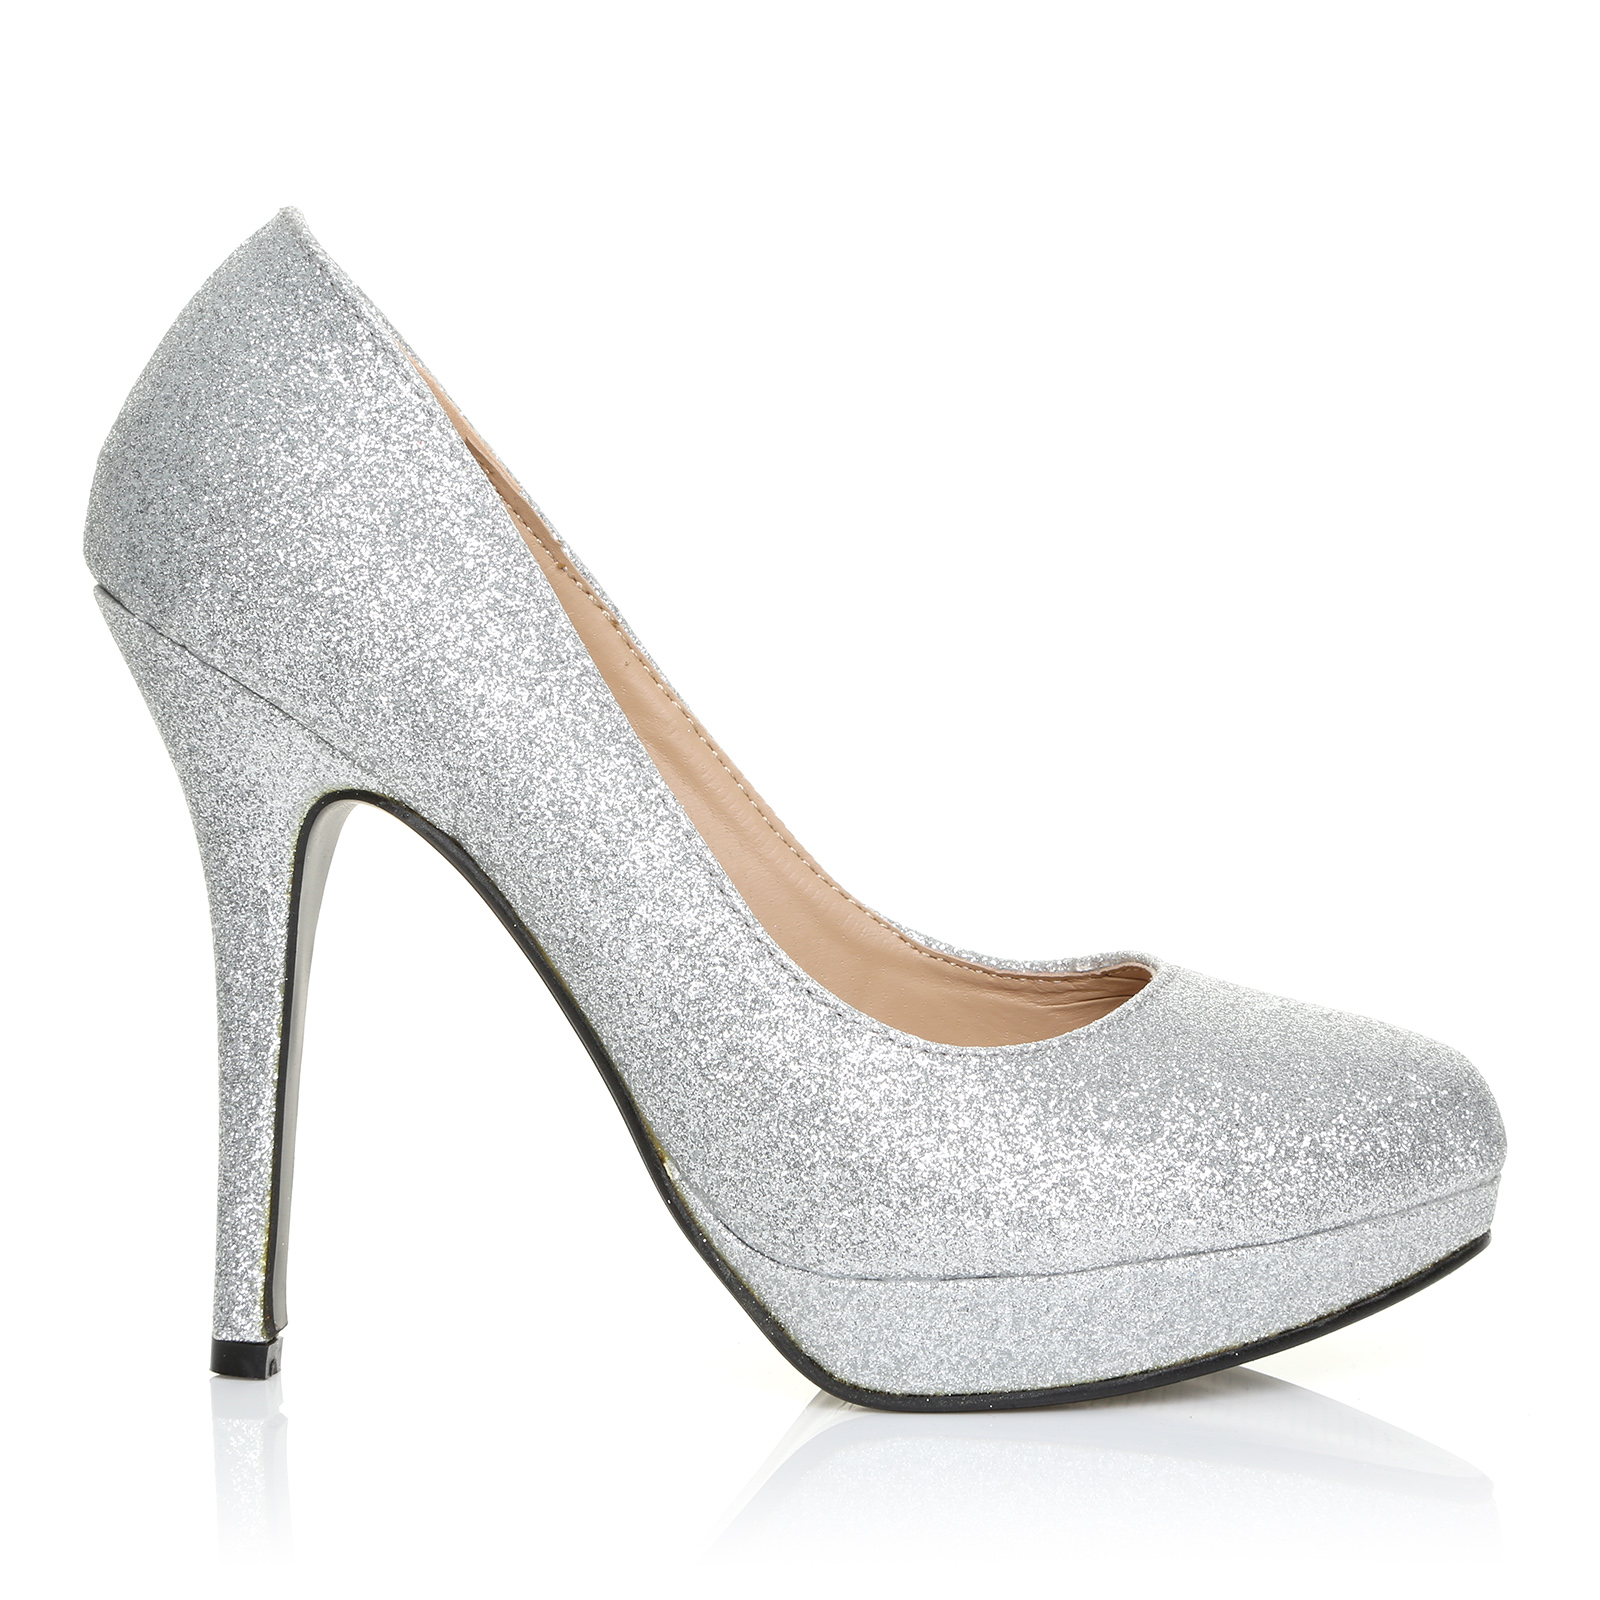 silver glitter stiletto high heel platform court shoes